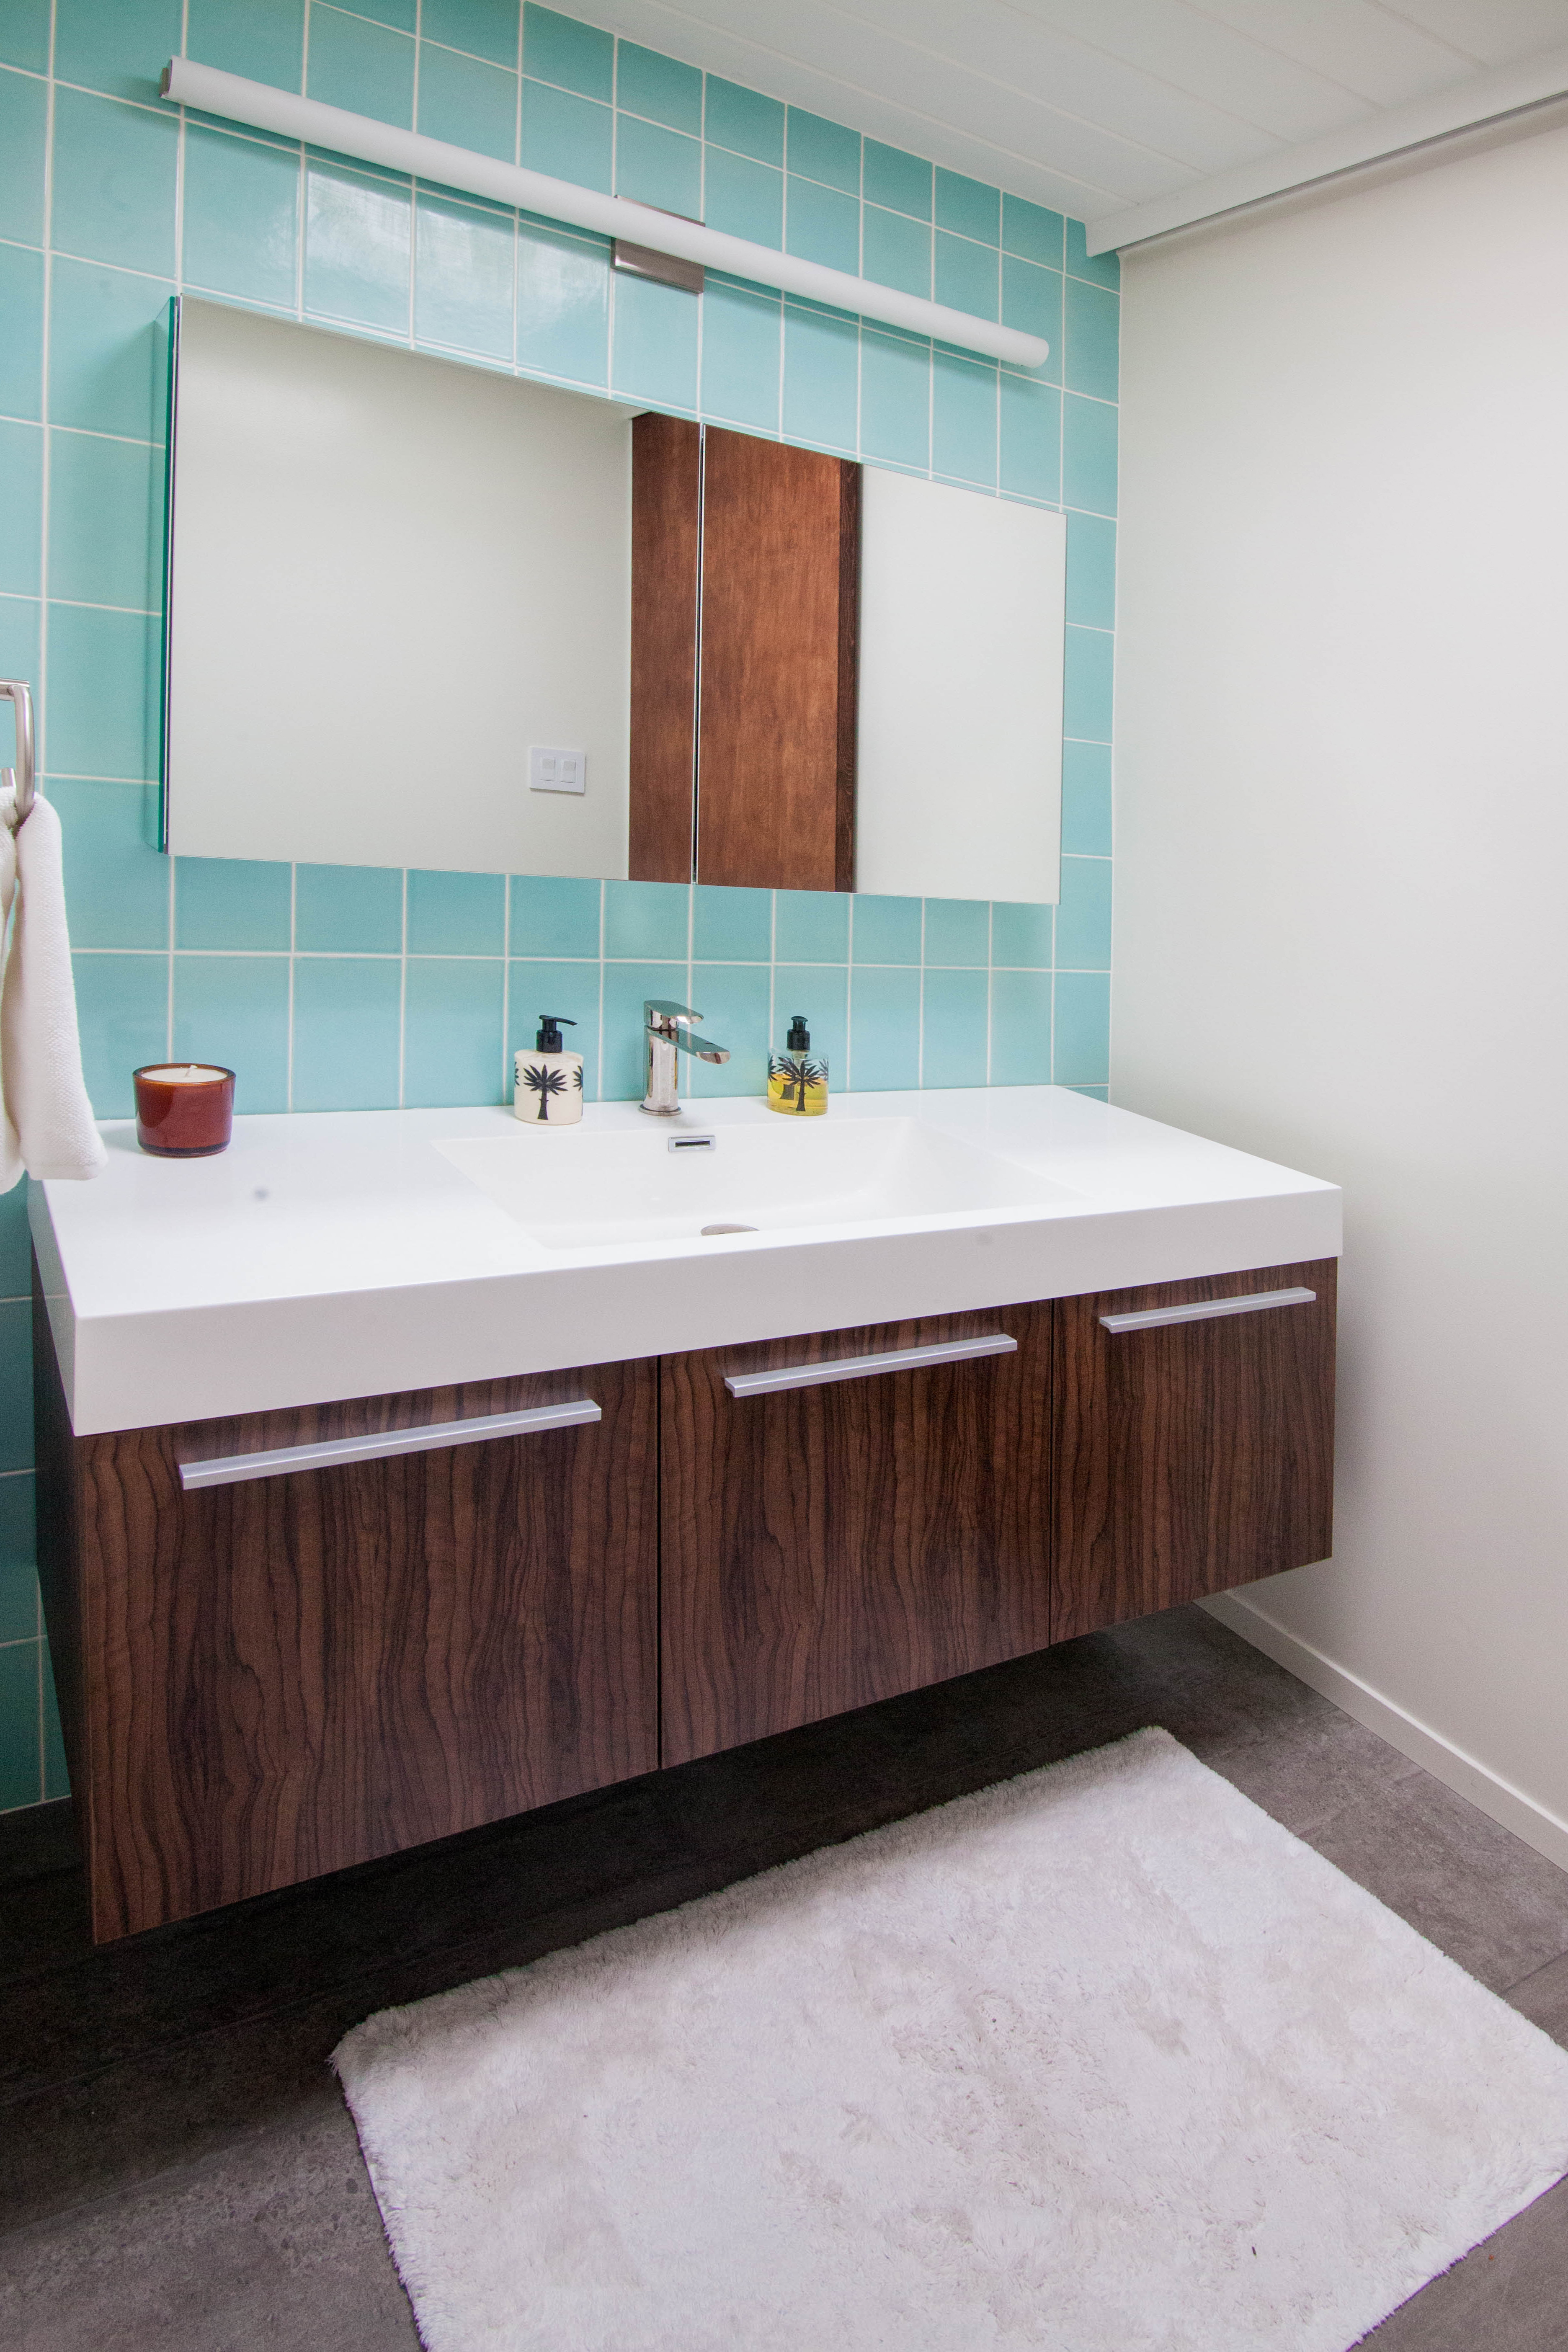 2017_Q3_image_residential_Destination_Eichler_bathroom_vanity_backsplash_tile_4x8_straight_set_aqua_2.jpg?mtime=20180610105914#asset:265949